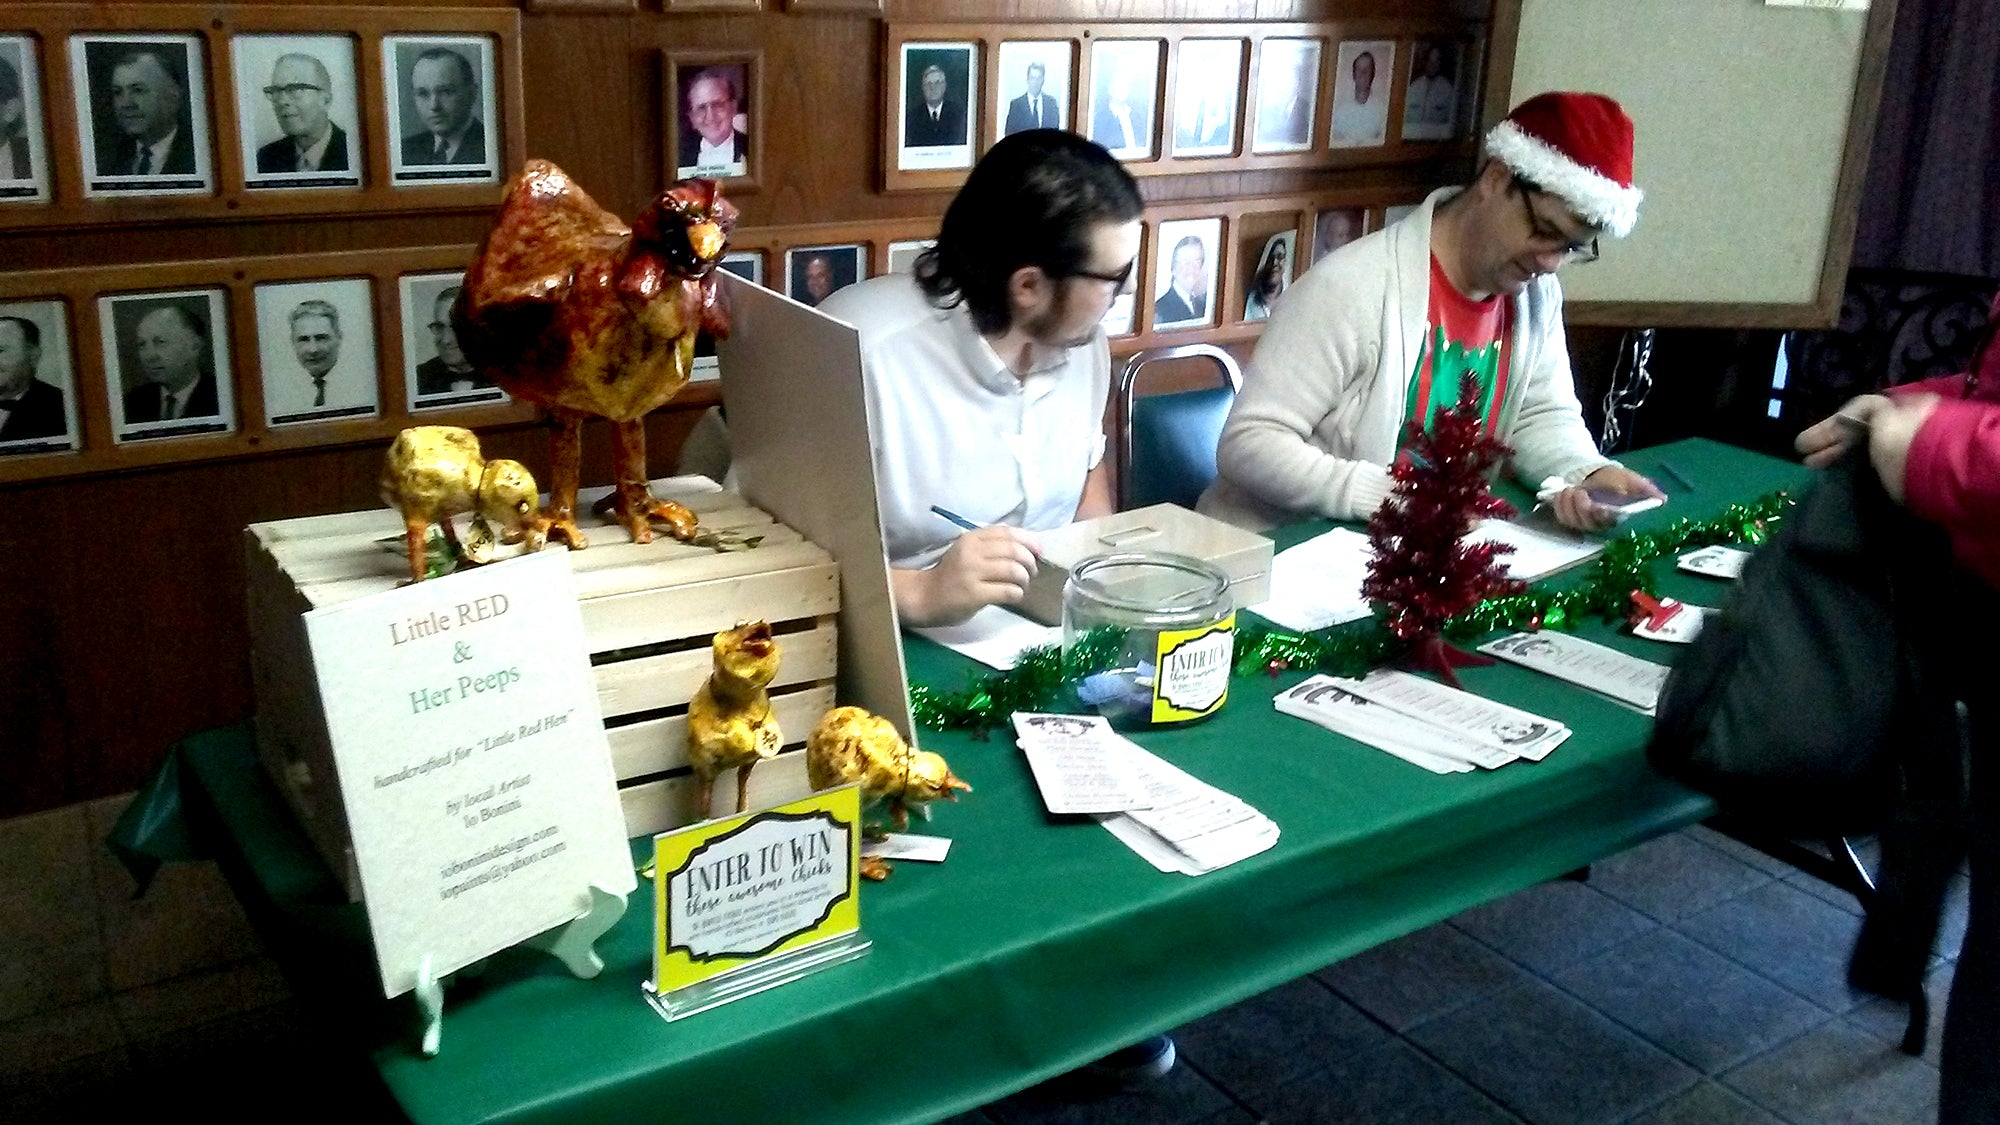 Alex W. and David M. run the front desk at Breakfast with Santa